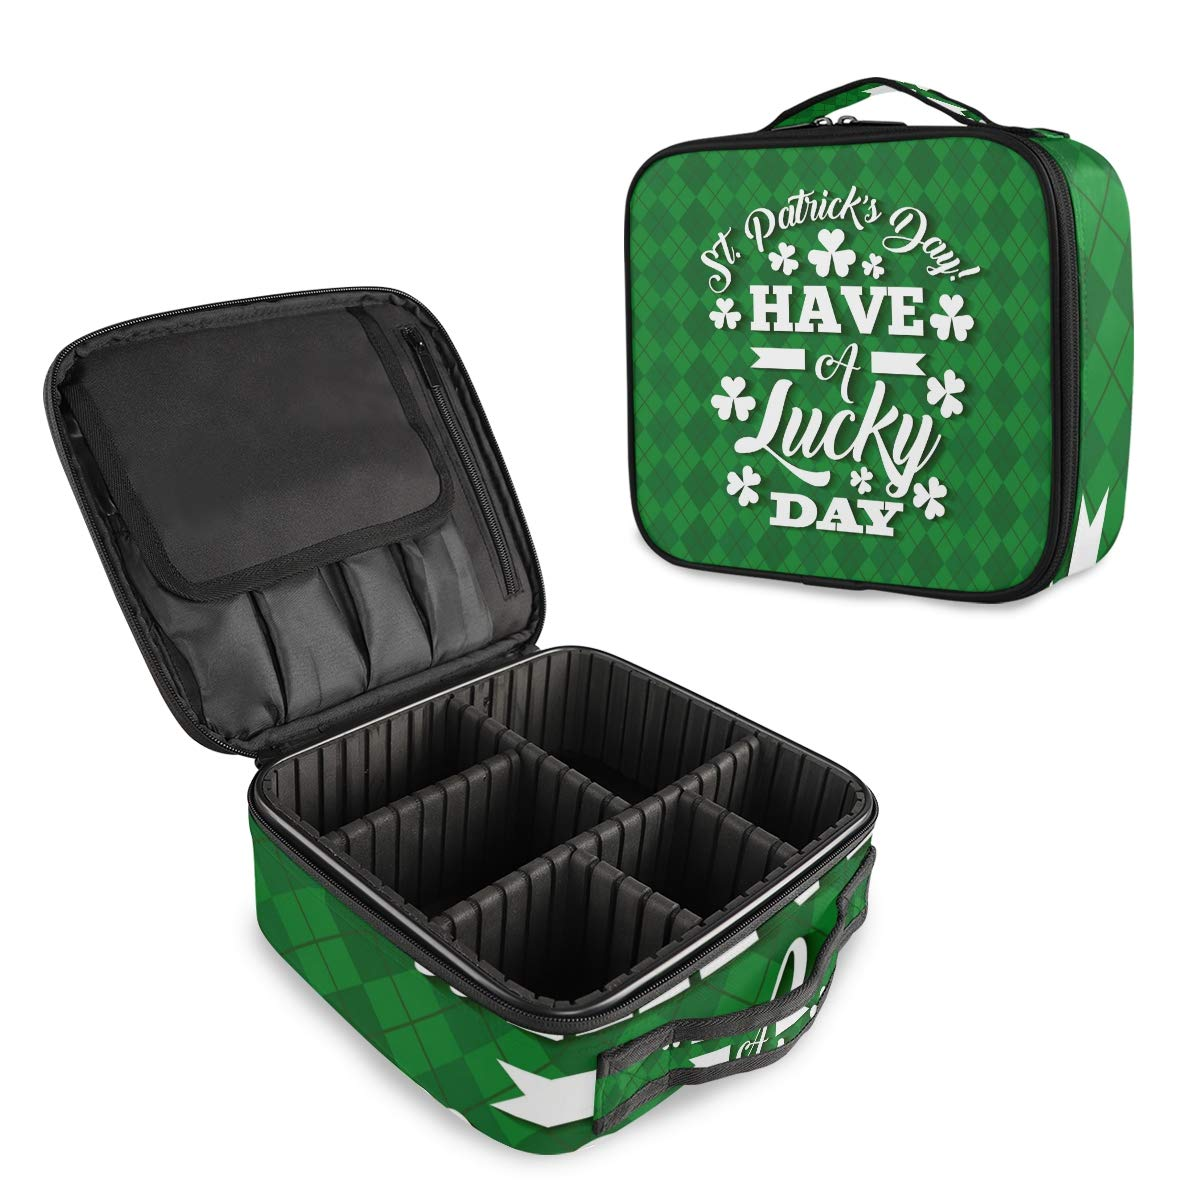 ALAZA Happy Patrick's Day Oakland Mall Clover Case Leaf Plaid Makeup Max 43% OFF Cosmetic